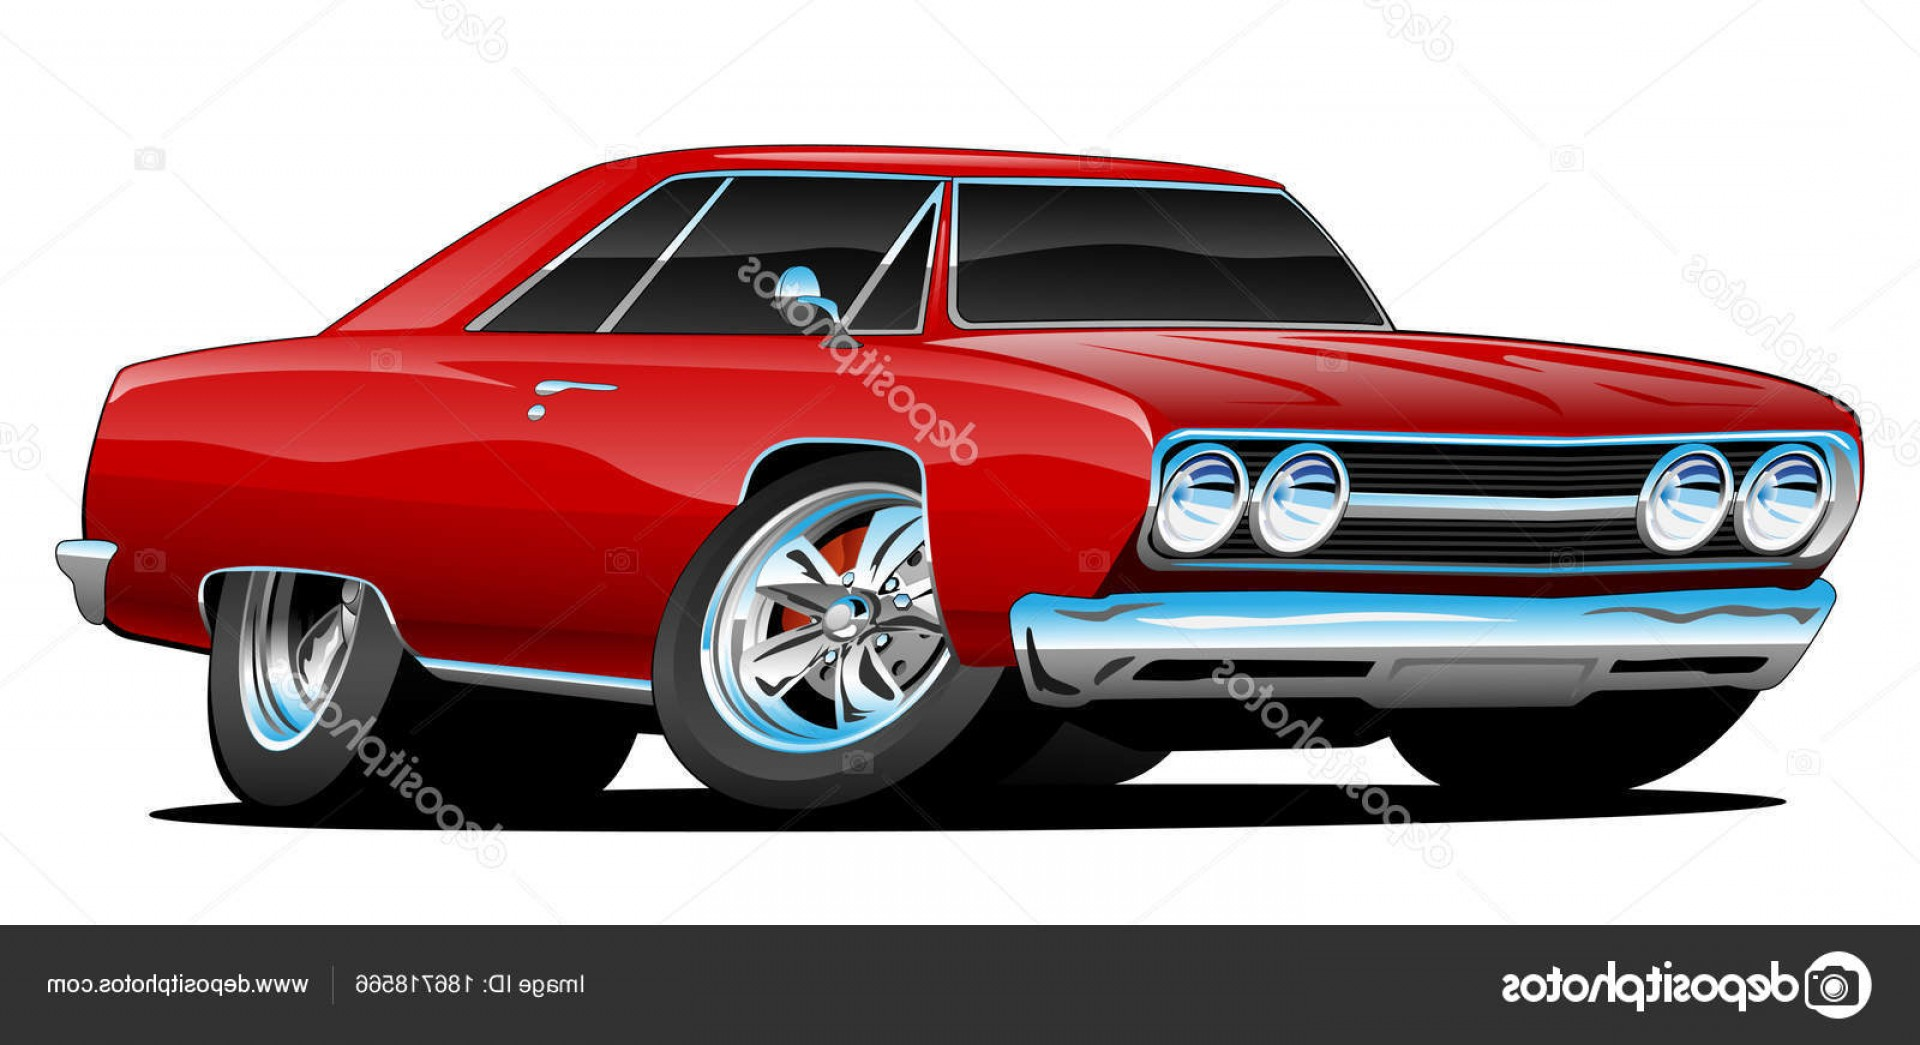 Classic Street Rod Vector Art: Stock Illustration Hot Looking Vintage Style